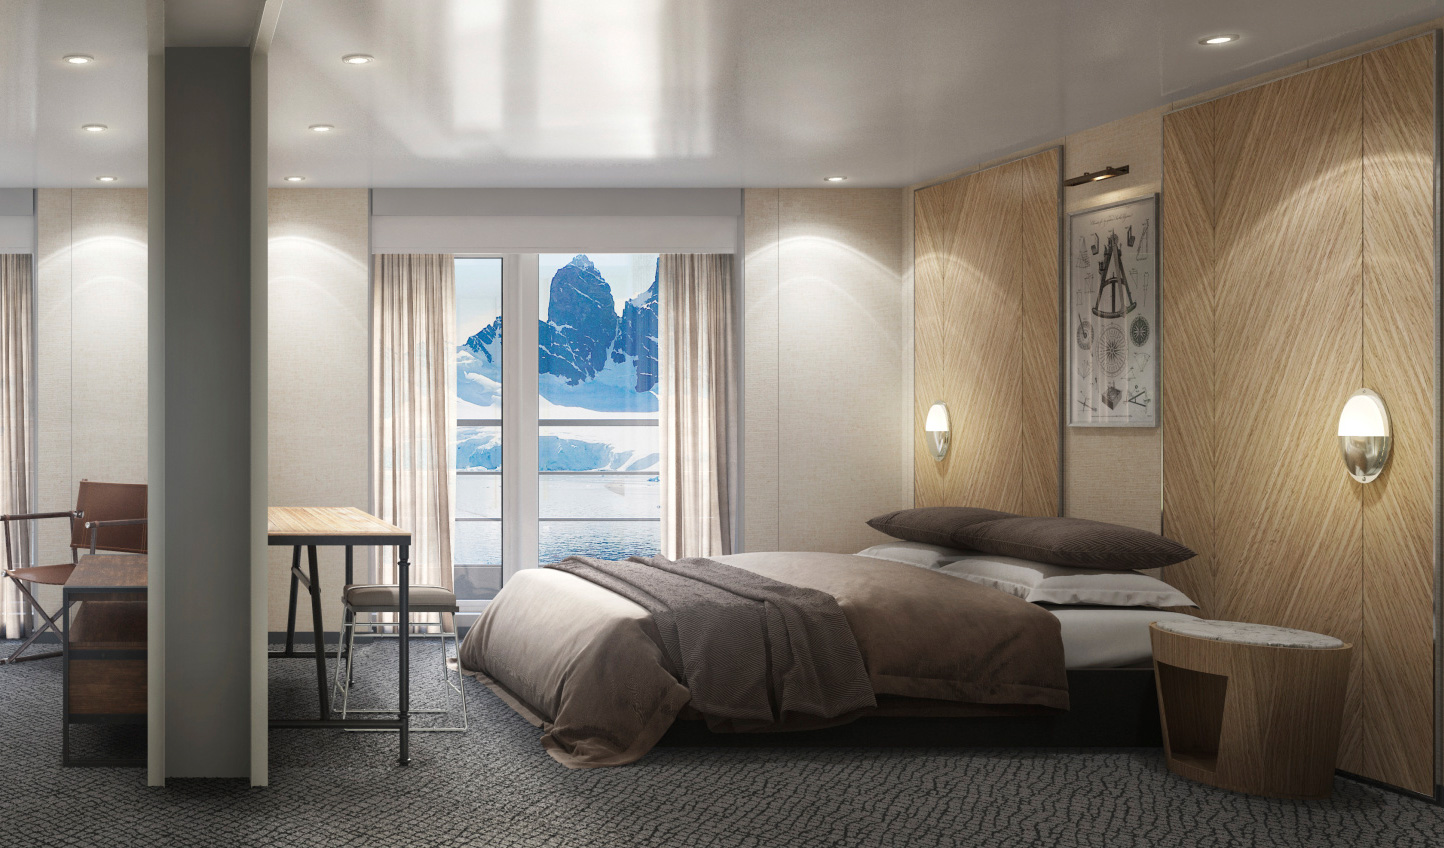 Sleek, elegant design that brings luxury to the frozen continent